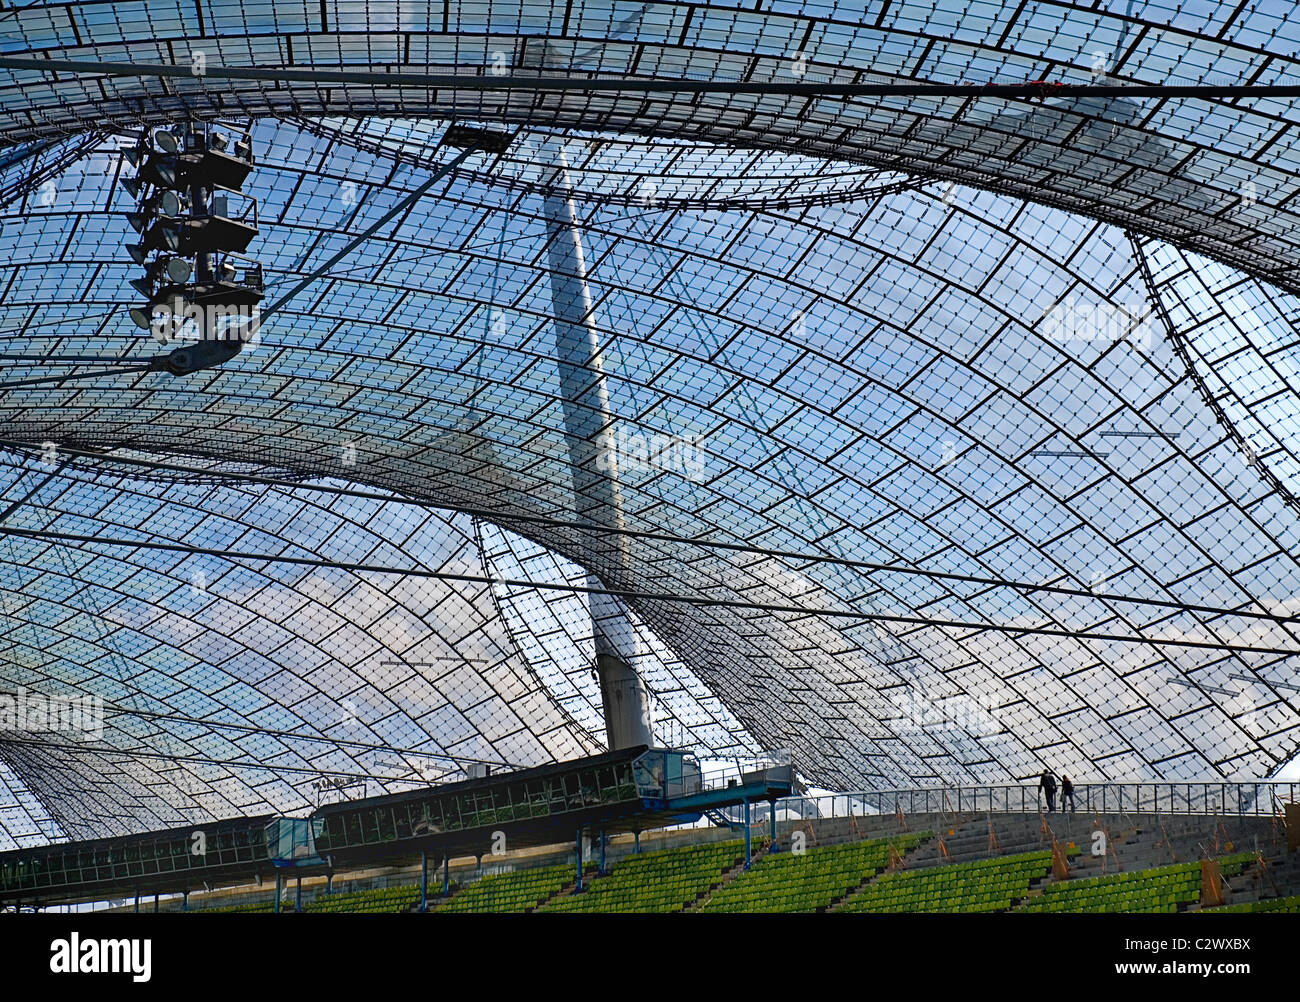 Germany Bavaria Munich 1972 Olympic Stadium curved section of bright green seating under canopy roof of acrylic - Stock Image